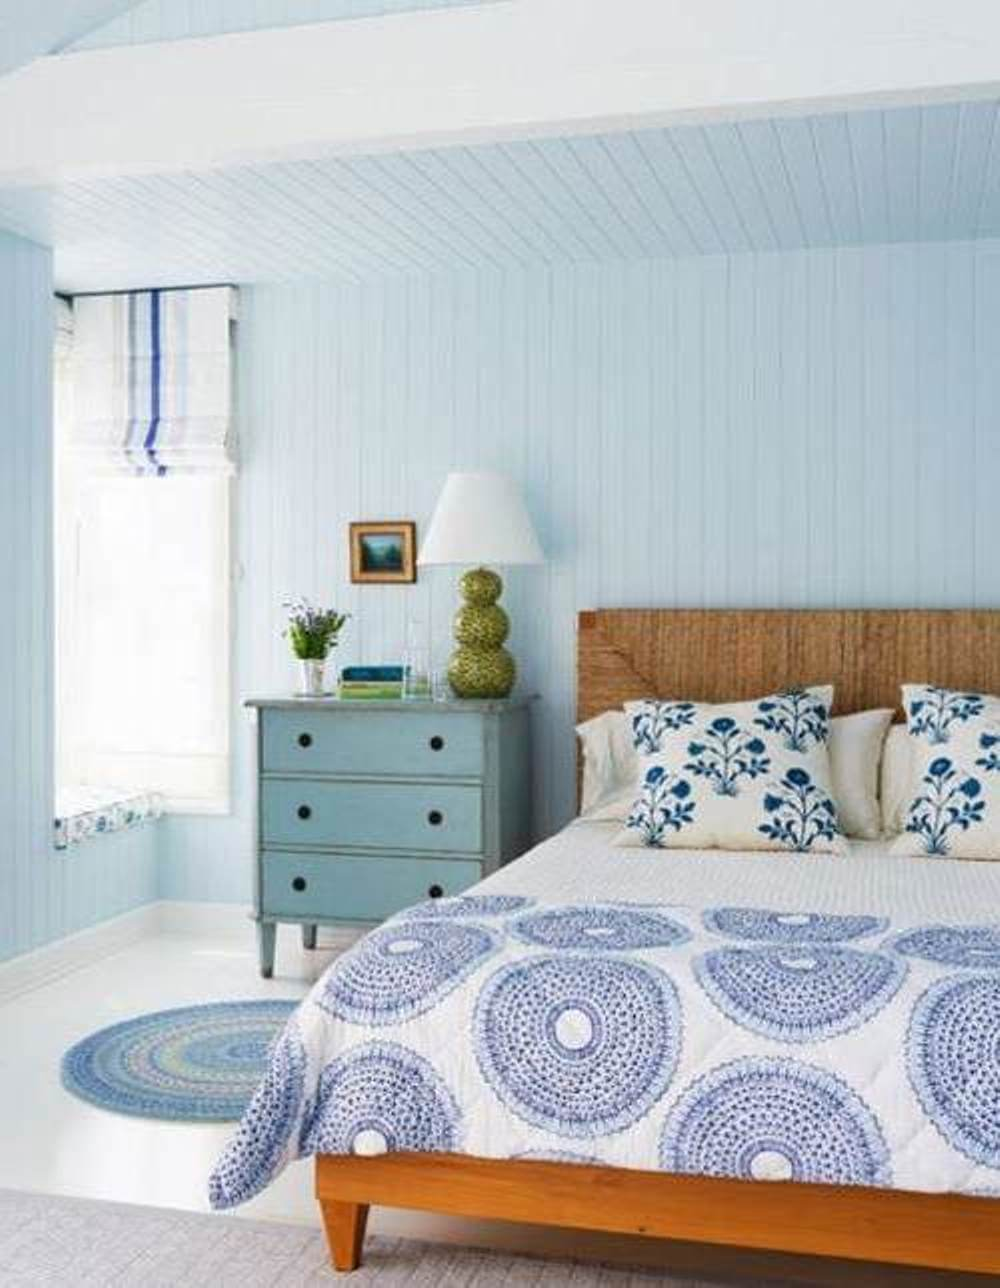 10 cool beach inspired bedroom interior design ideas Blue bedroom